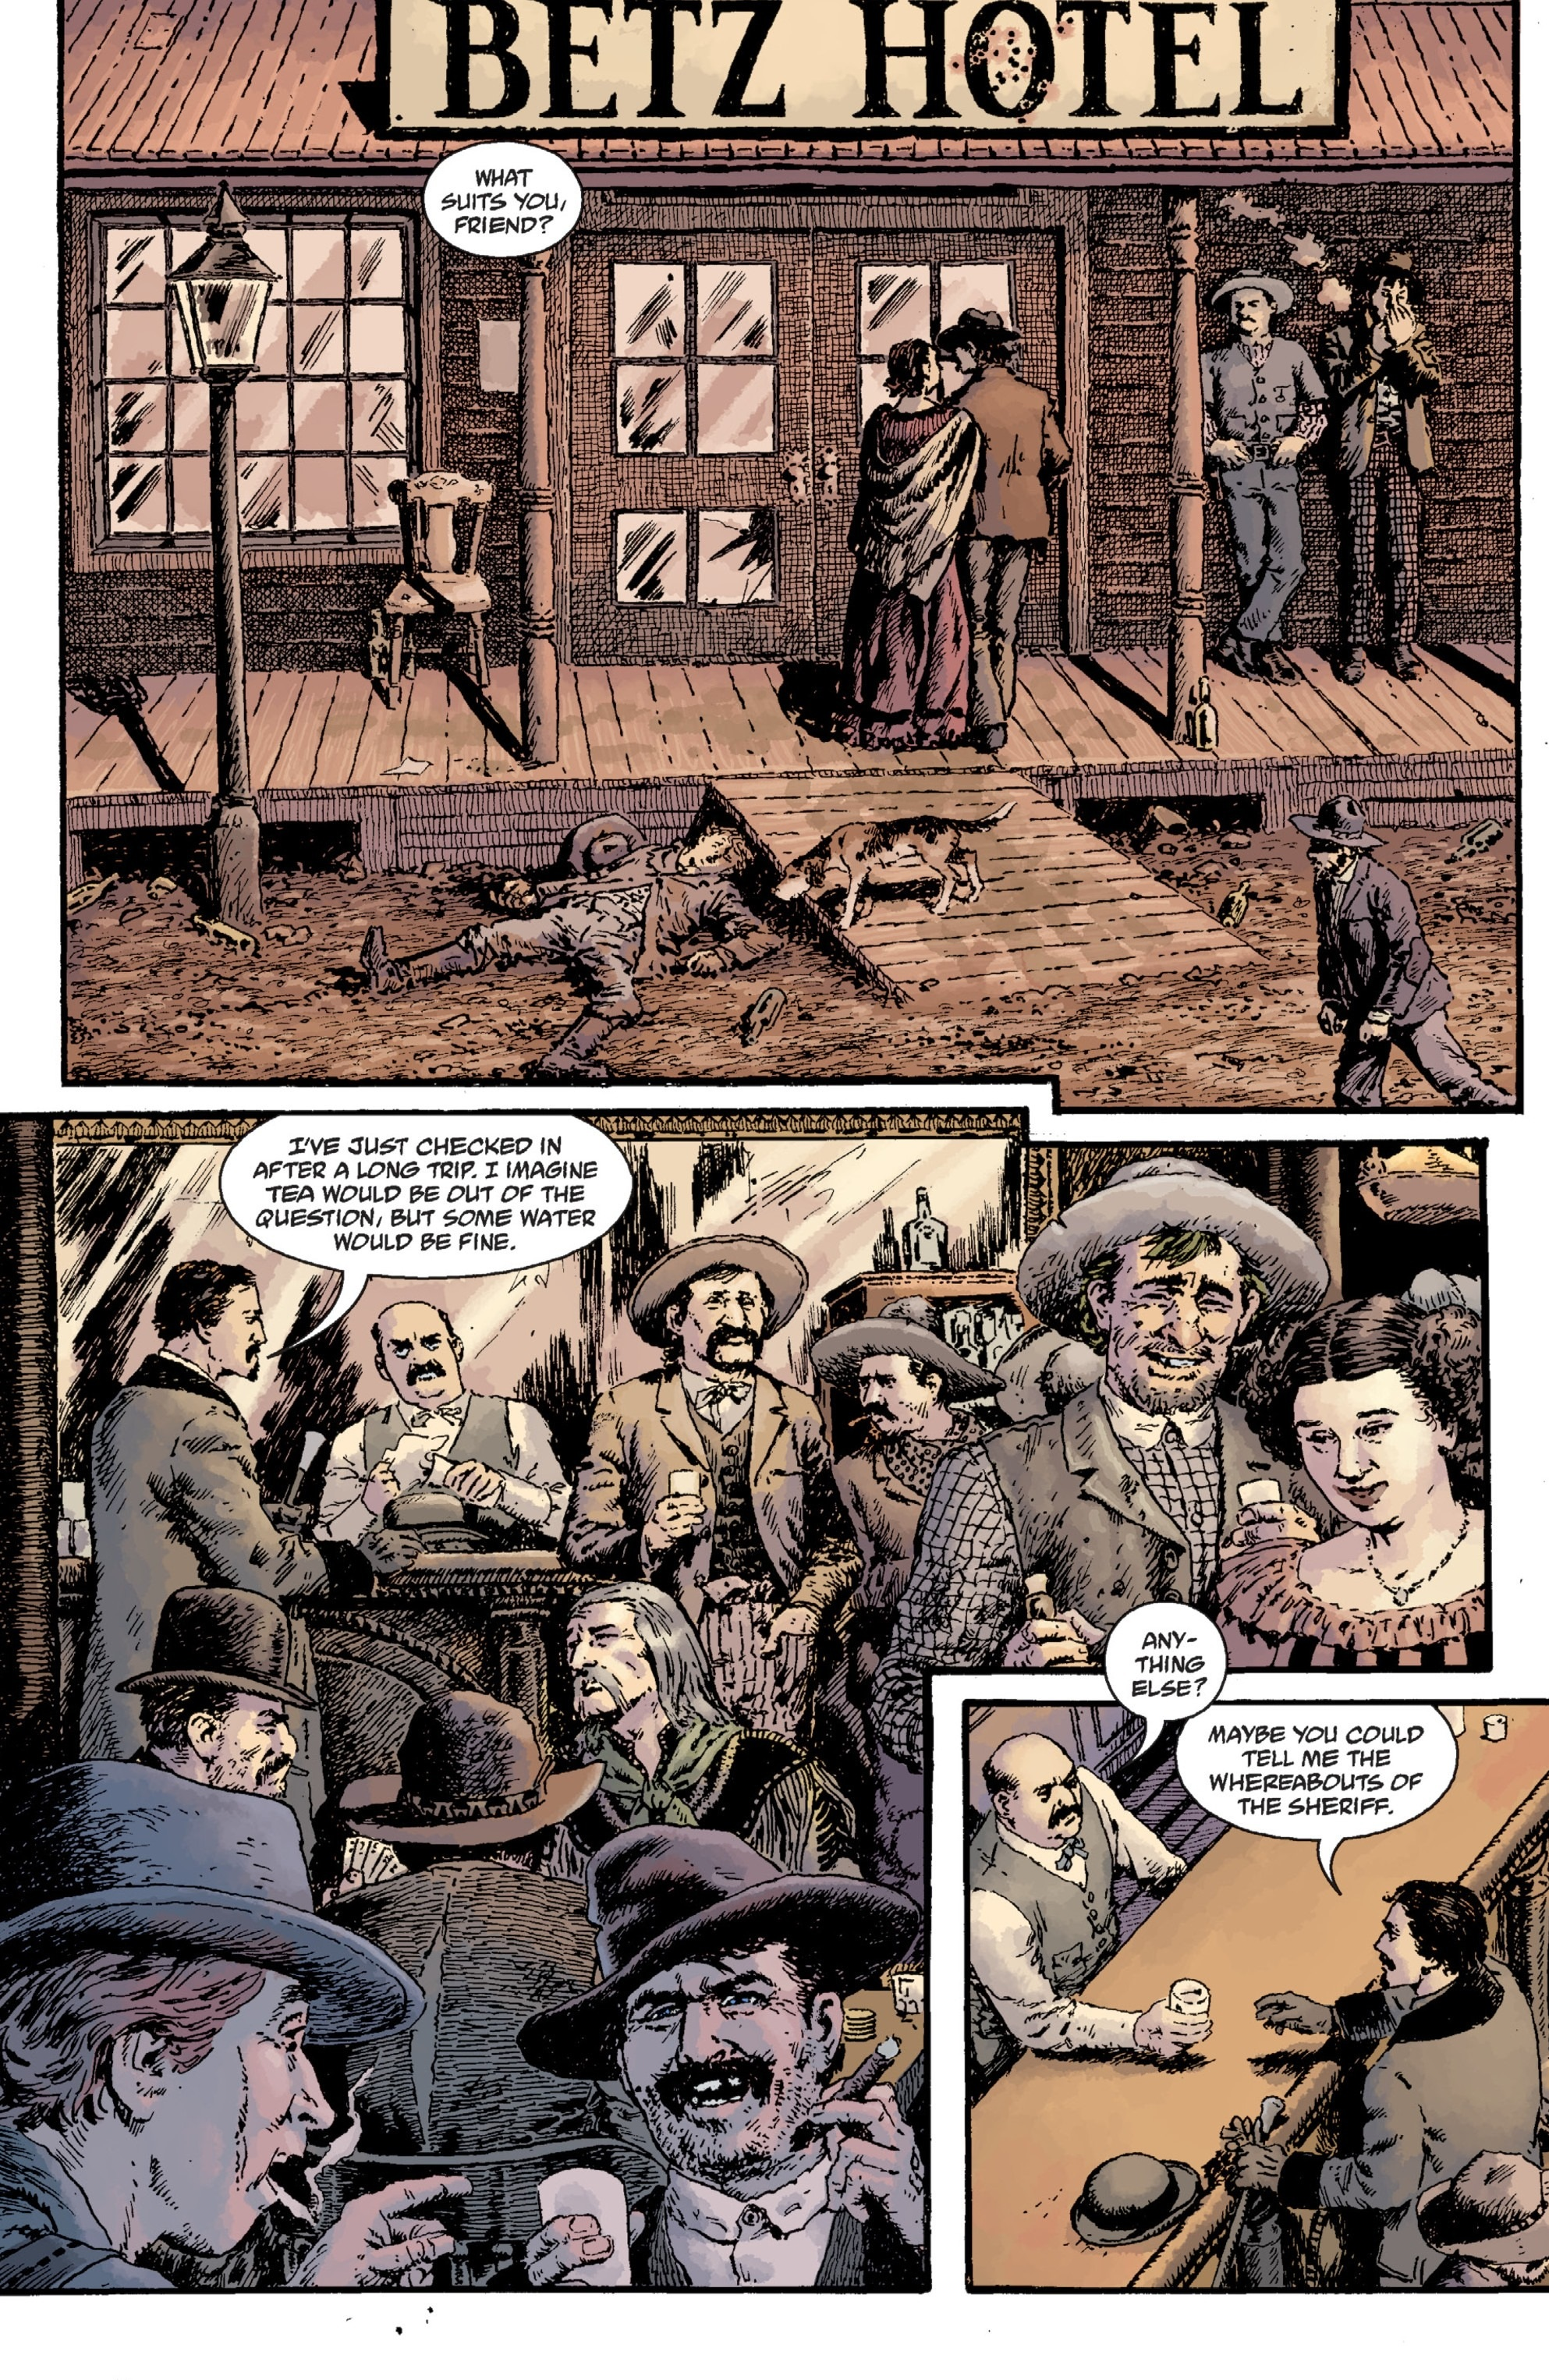 Witchfinder: Lost and Gone Forever (2011) #1 pg9, art by John Severin.